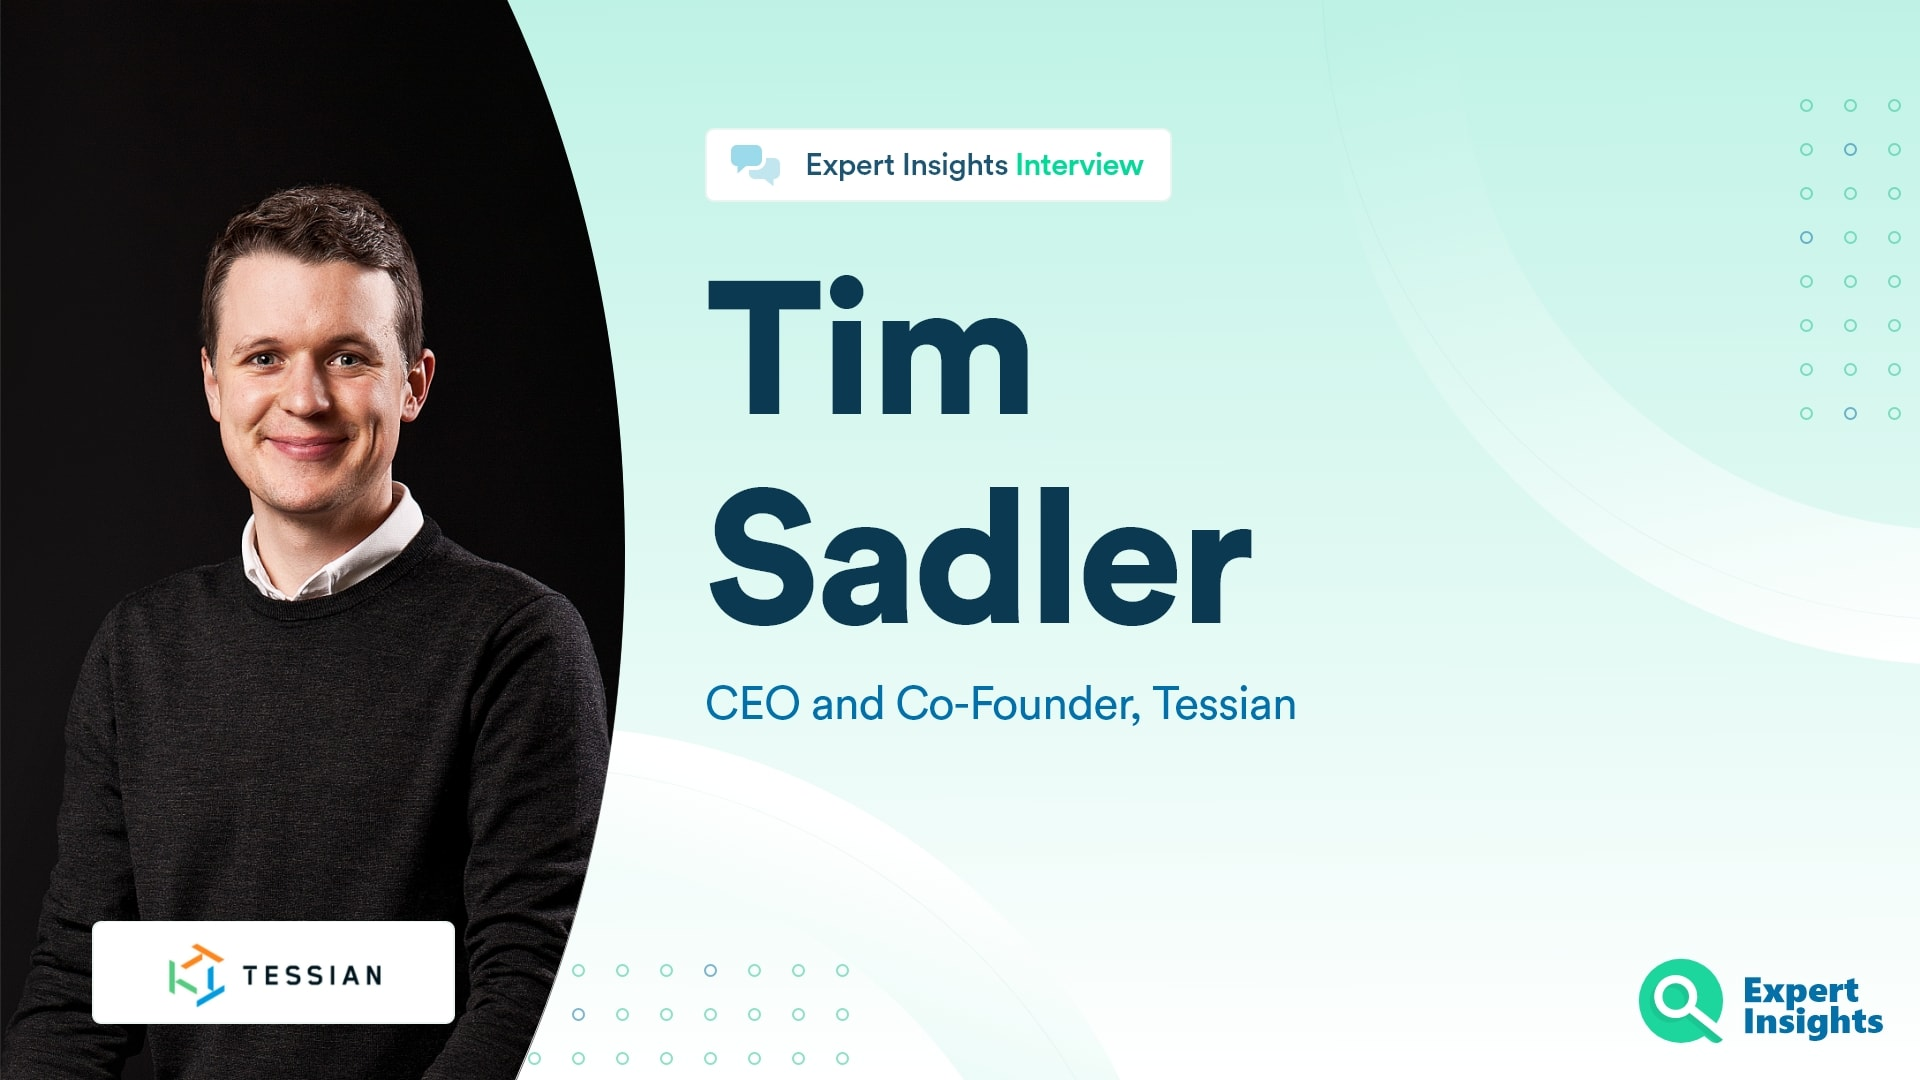 Expert Insights Interview With Tim Sadler Of Tessian